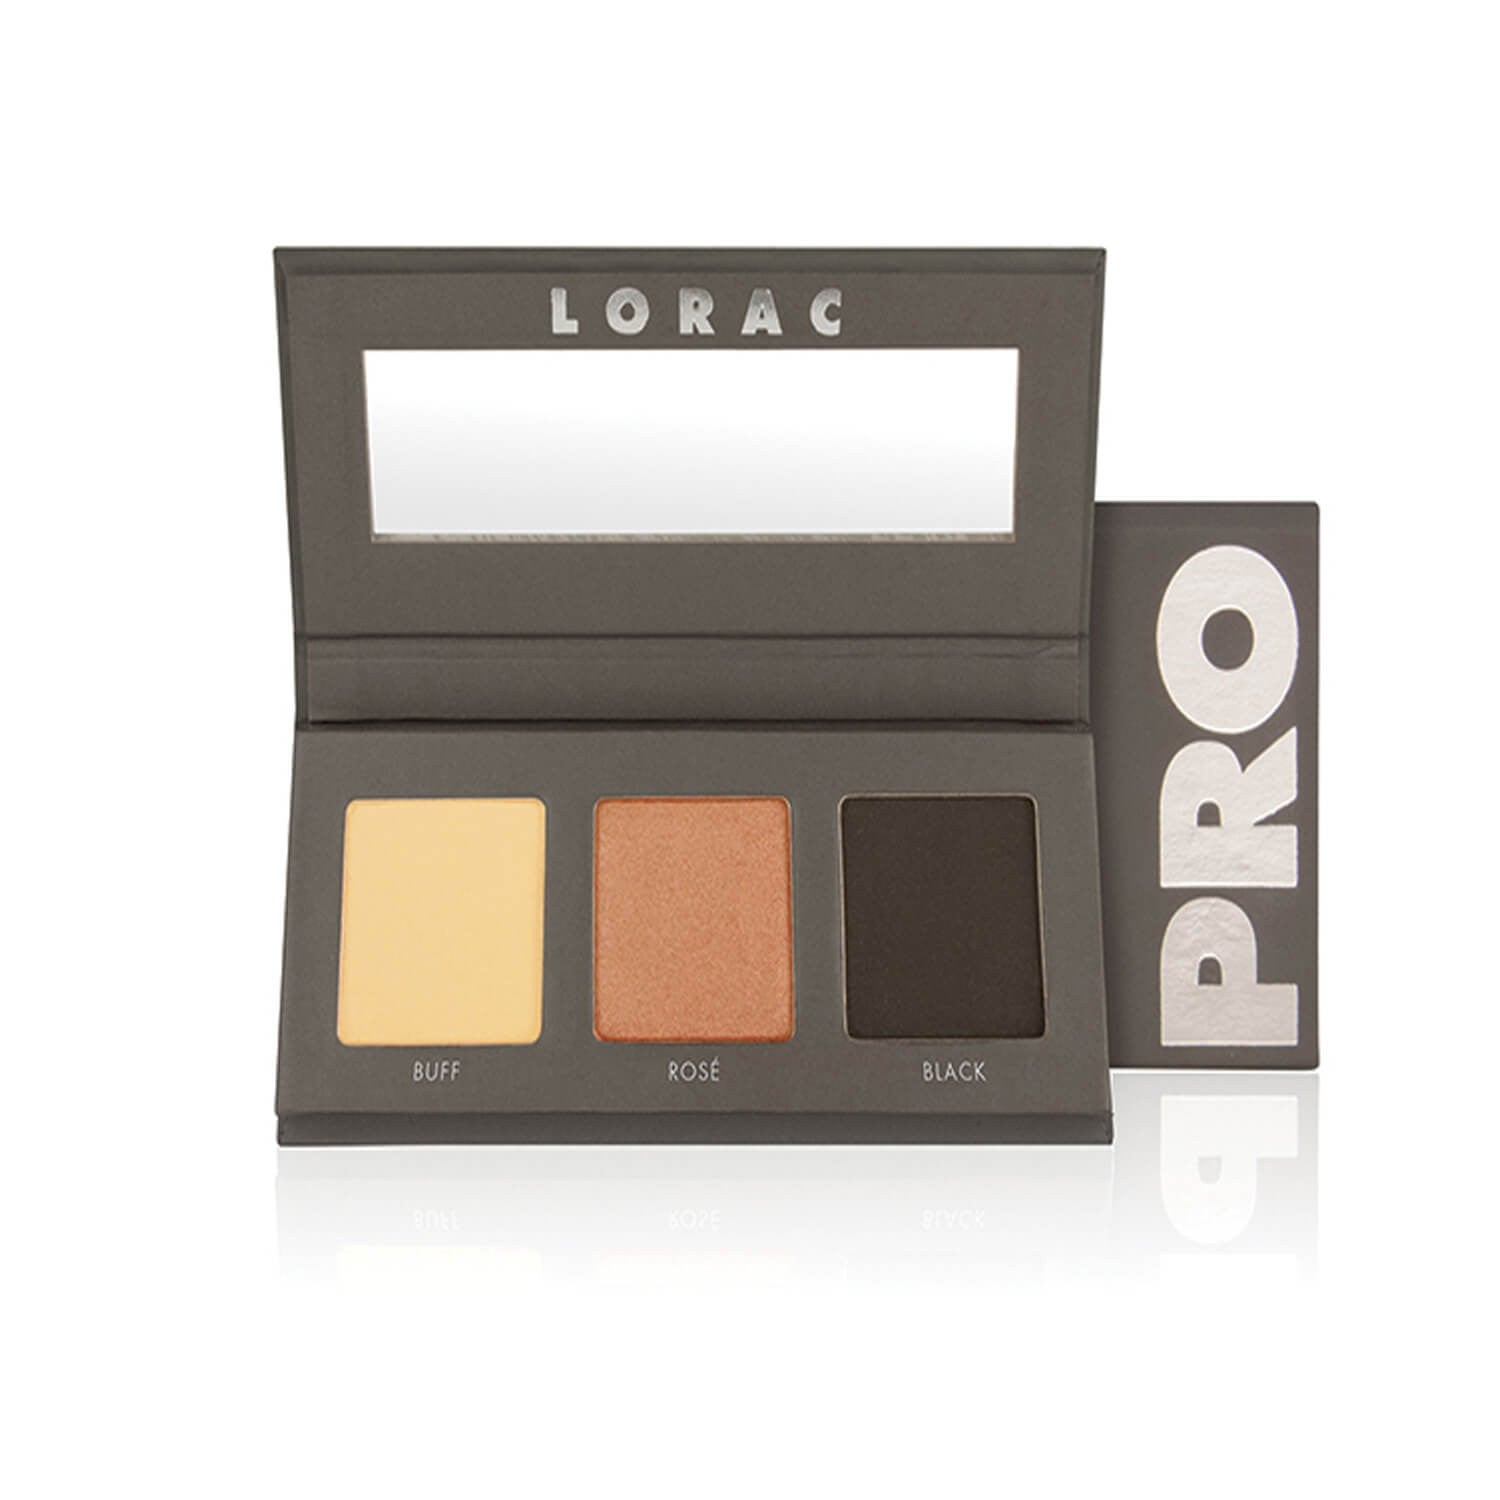 LORAC Pocket PRO 2 Eye Shadow Palette